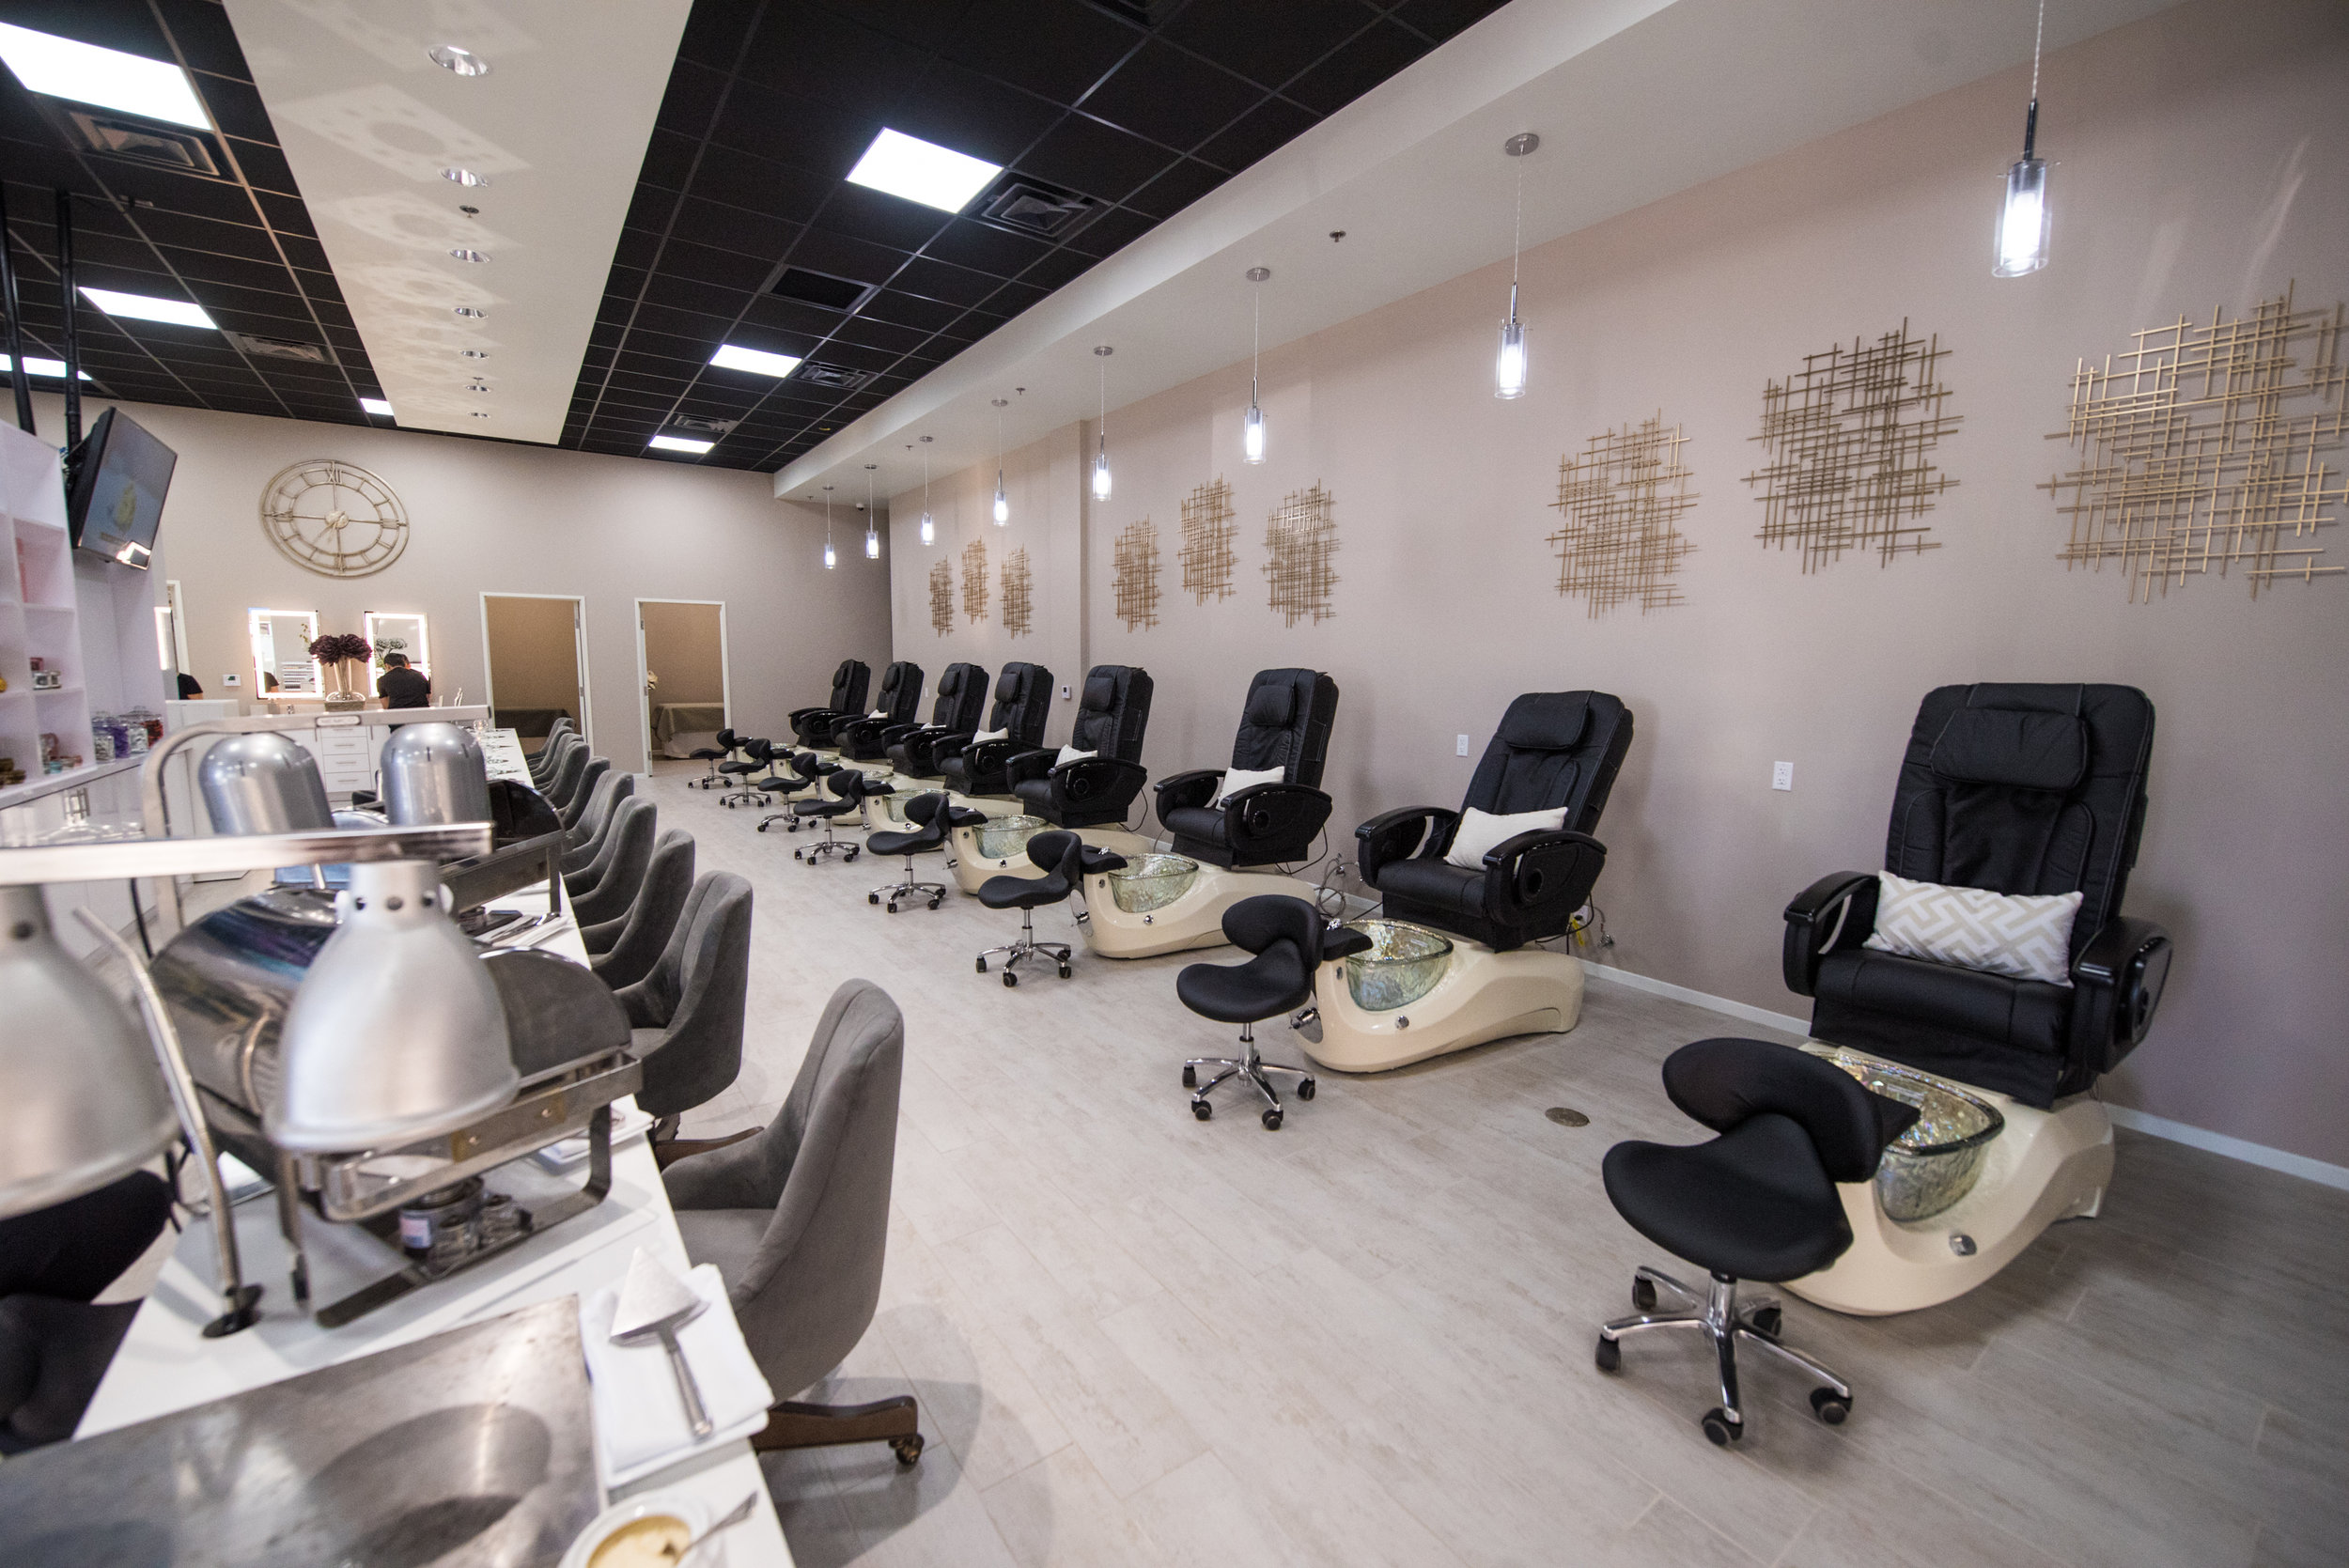 WELCOME TO THE   NAIL SOCIETY    SEE OUR WORK